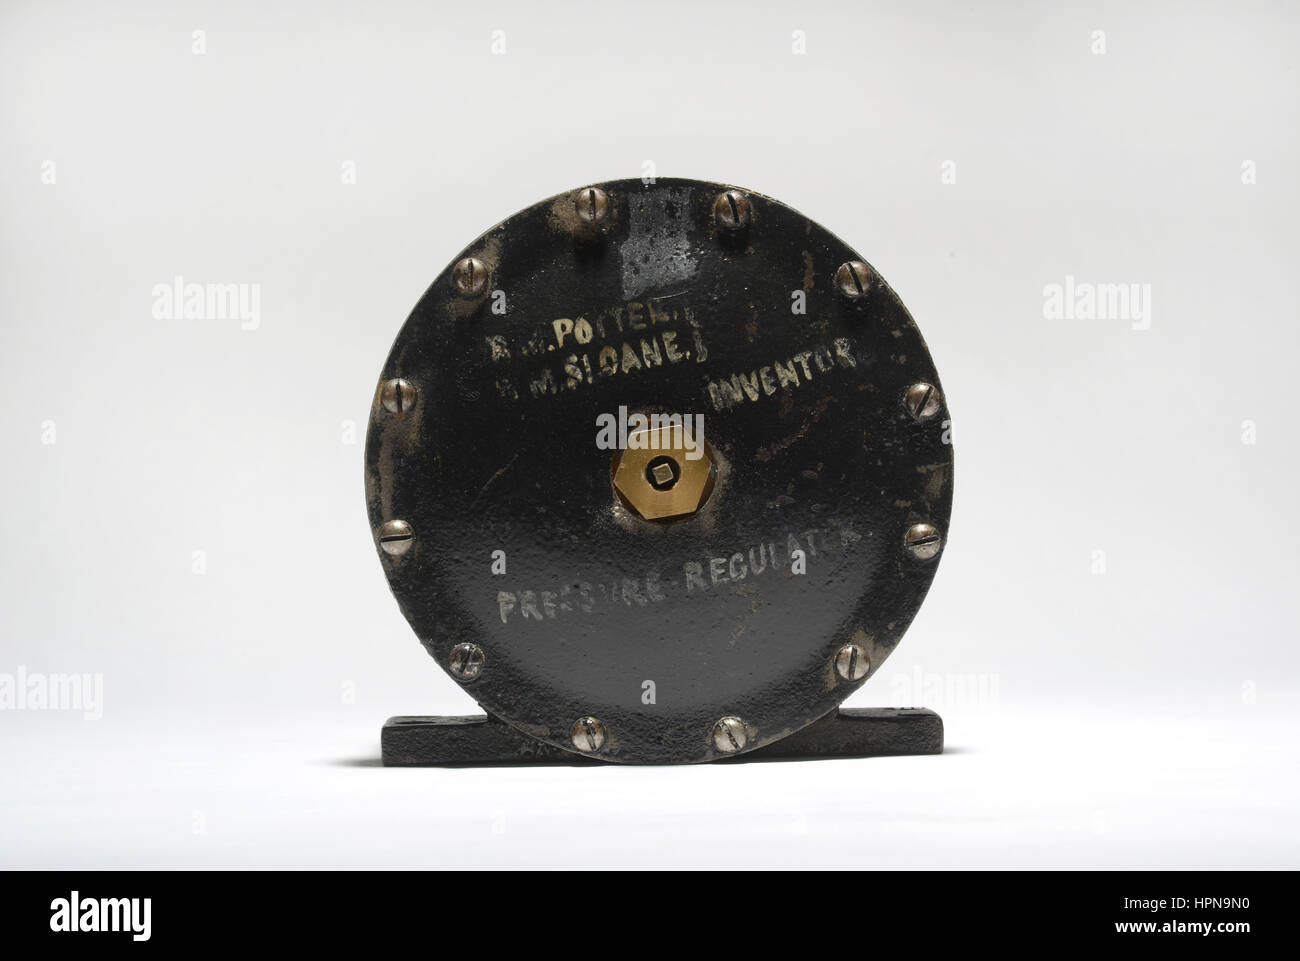 Patent model for Improvement in Pressure-Regulators of Governors.  Patent #209,192 awarded to R. M. Potter & - Stock Image